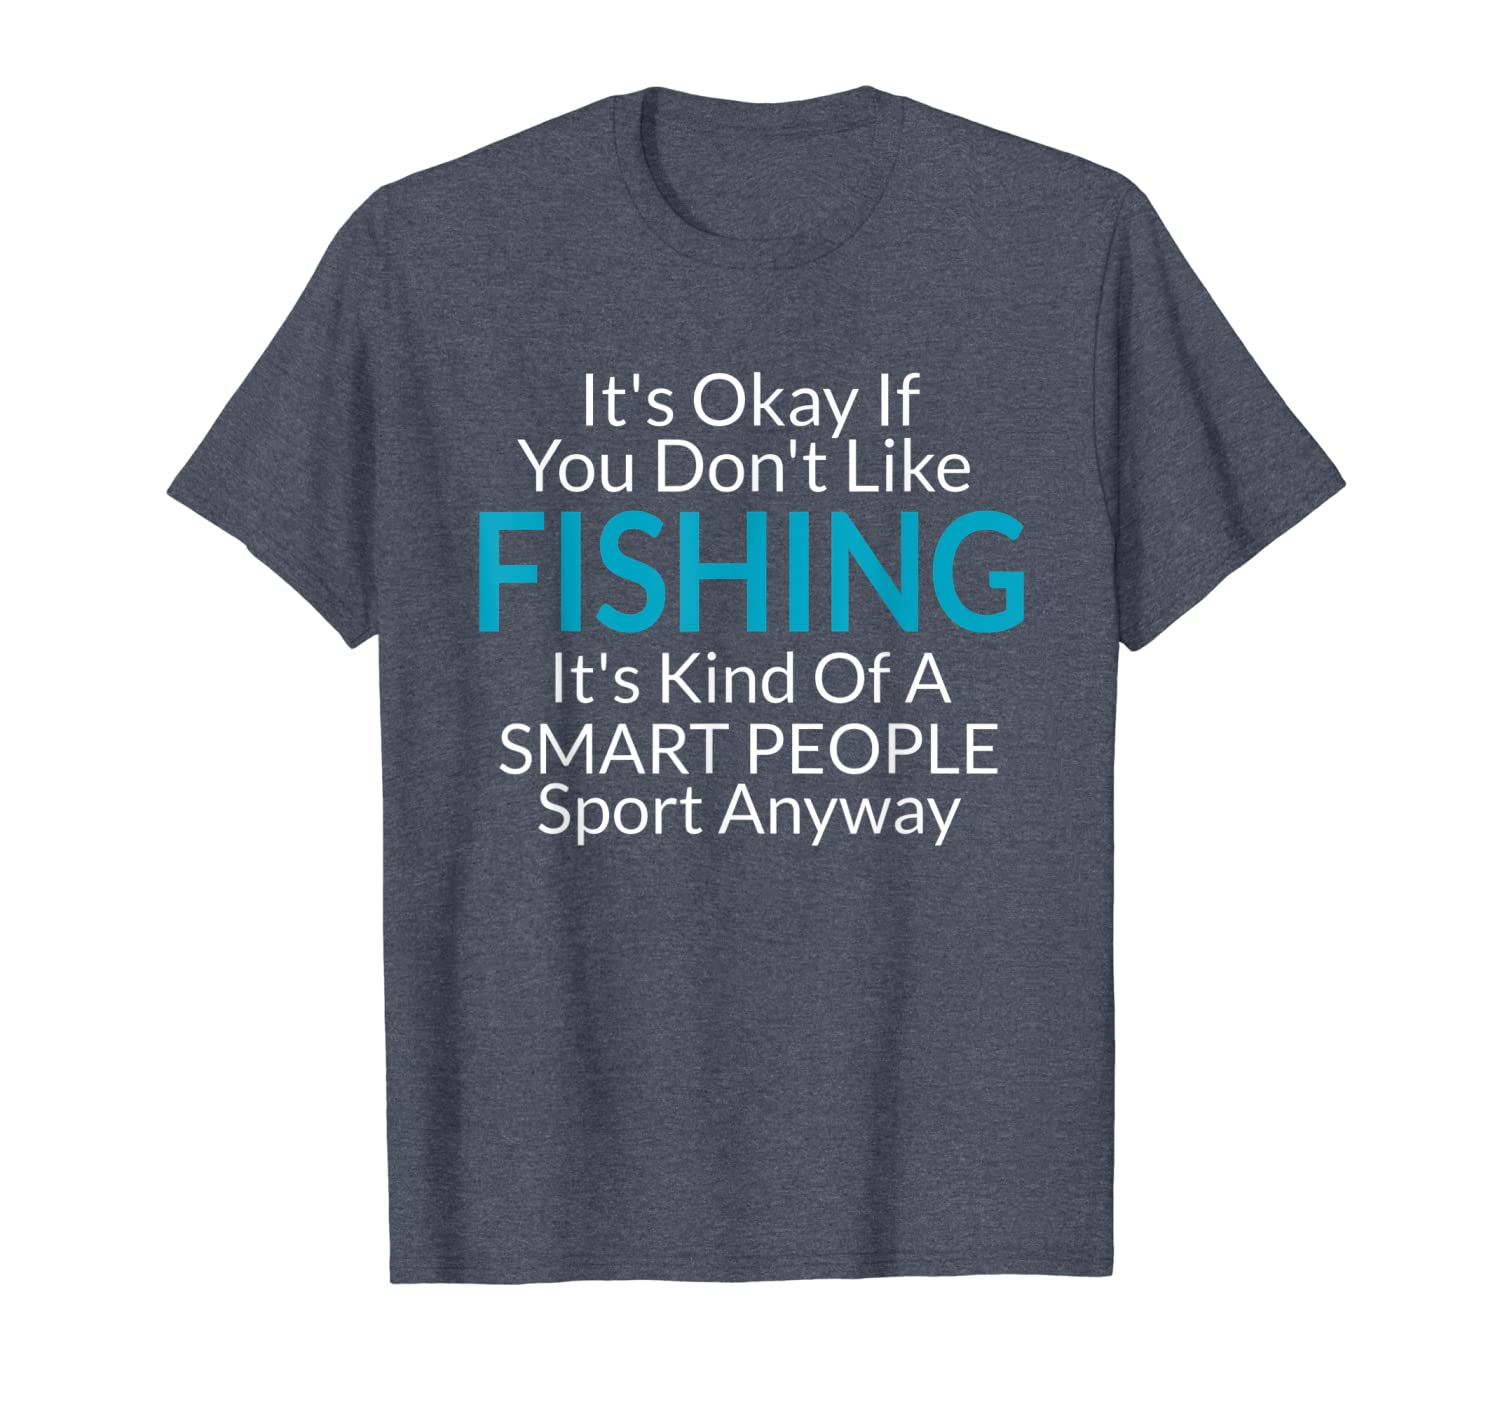 Its Ok If You Dont Like Fishing Gift Idea Funny Quotes T-Shirt Unisex Tshirt